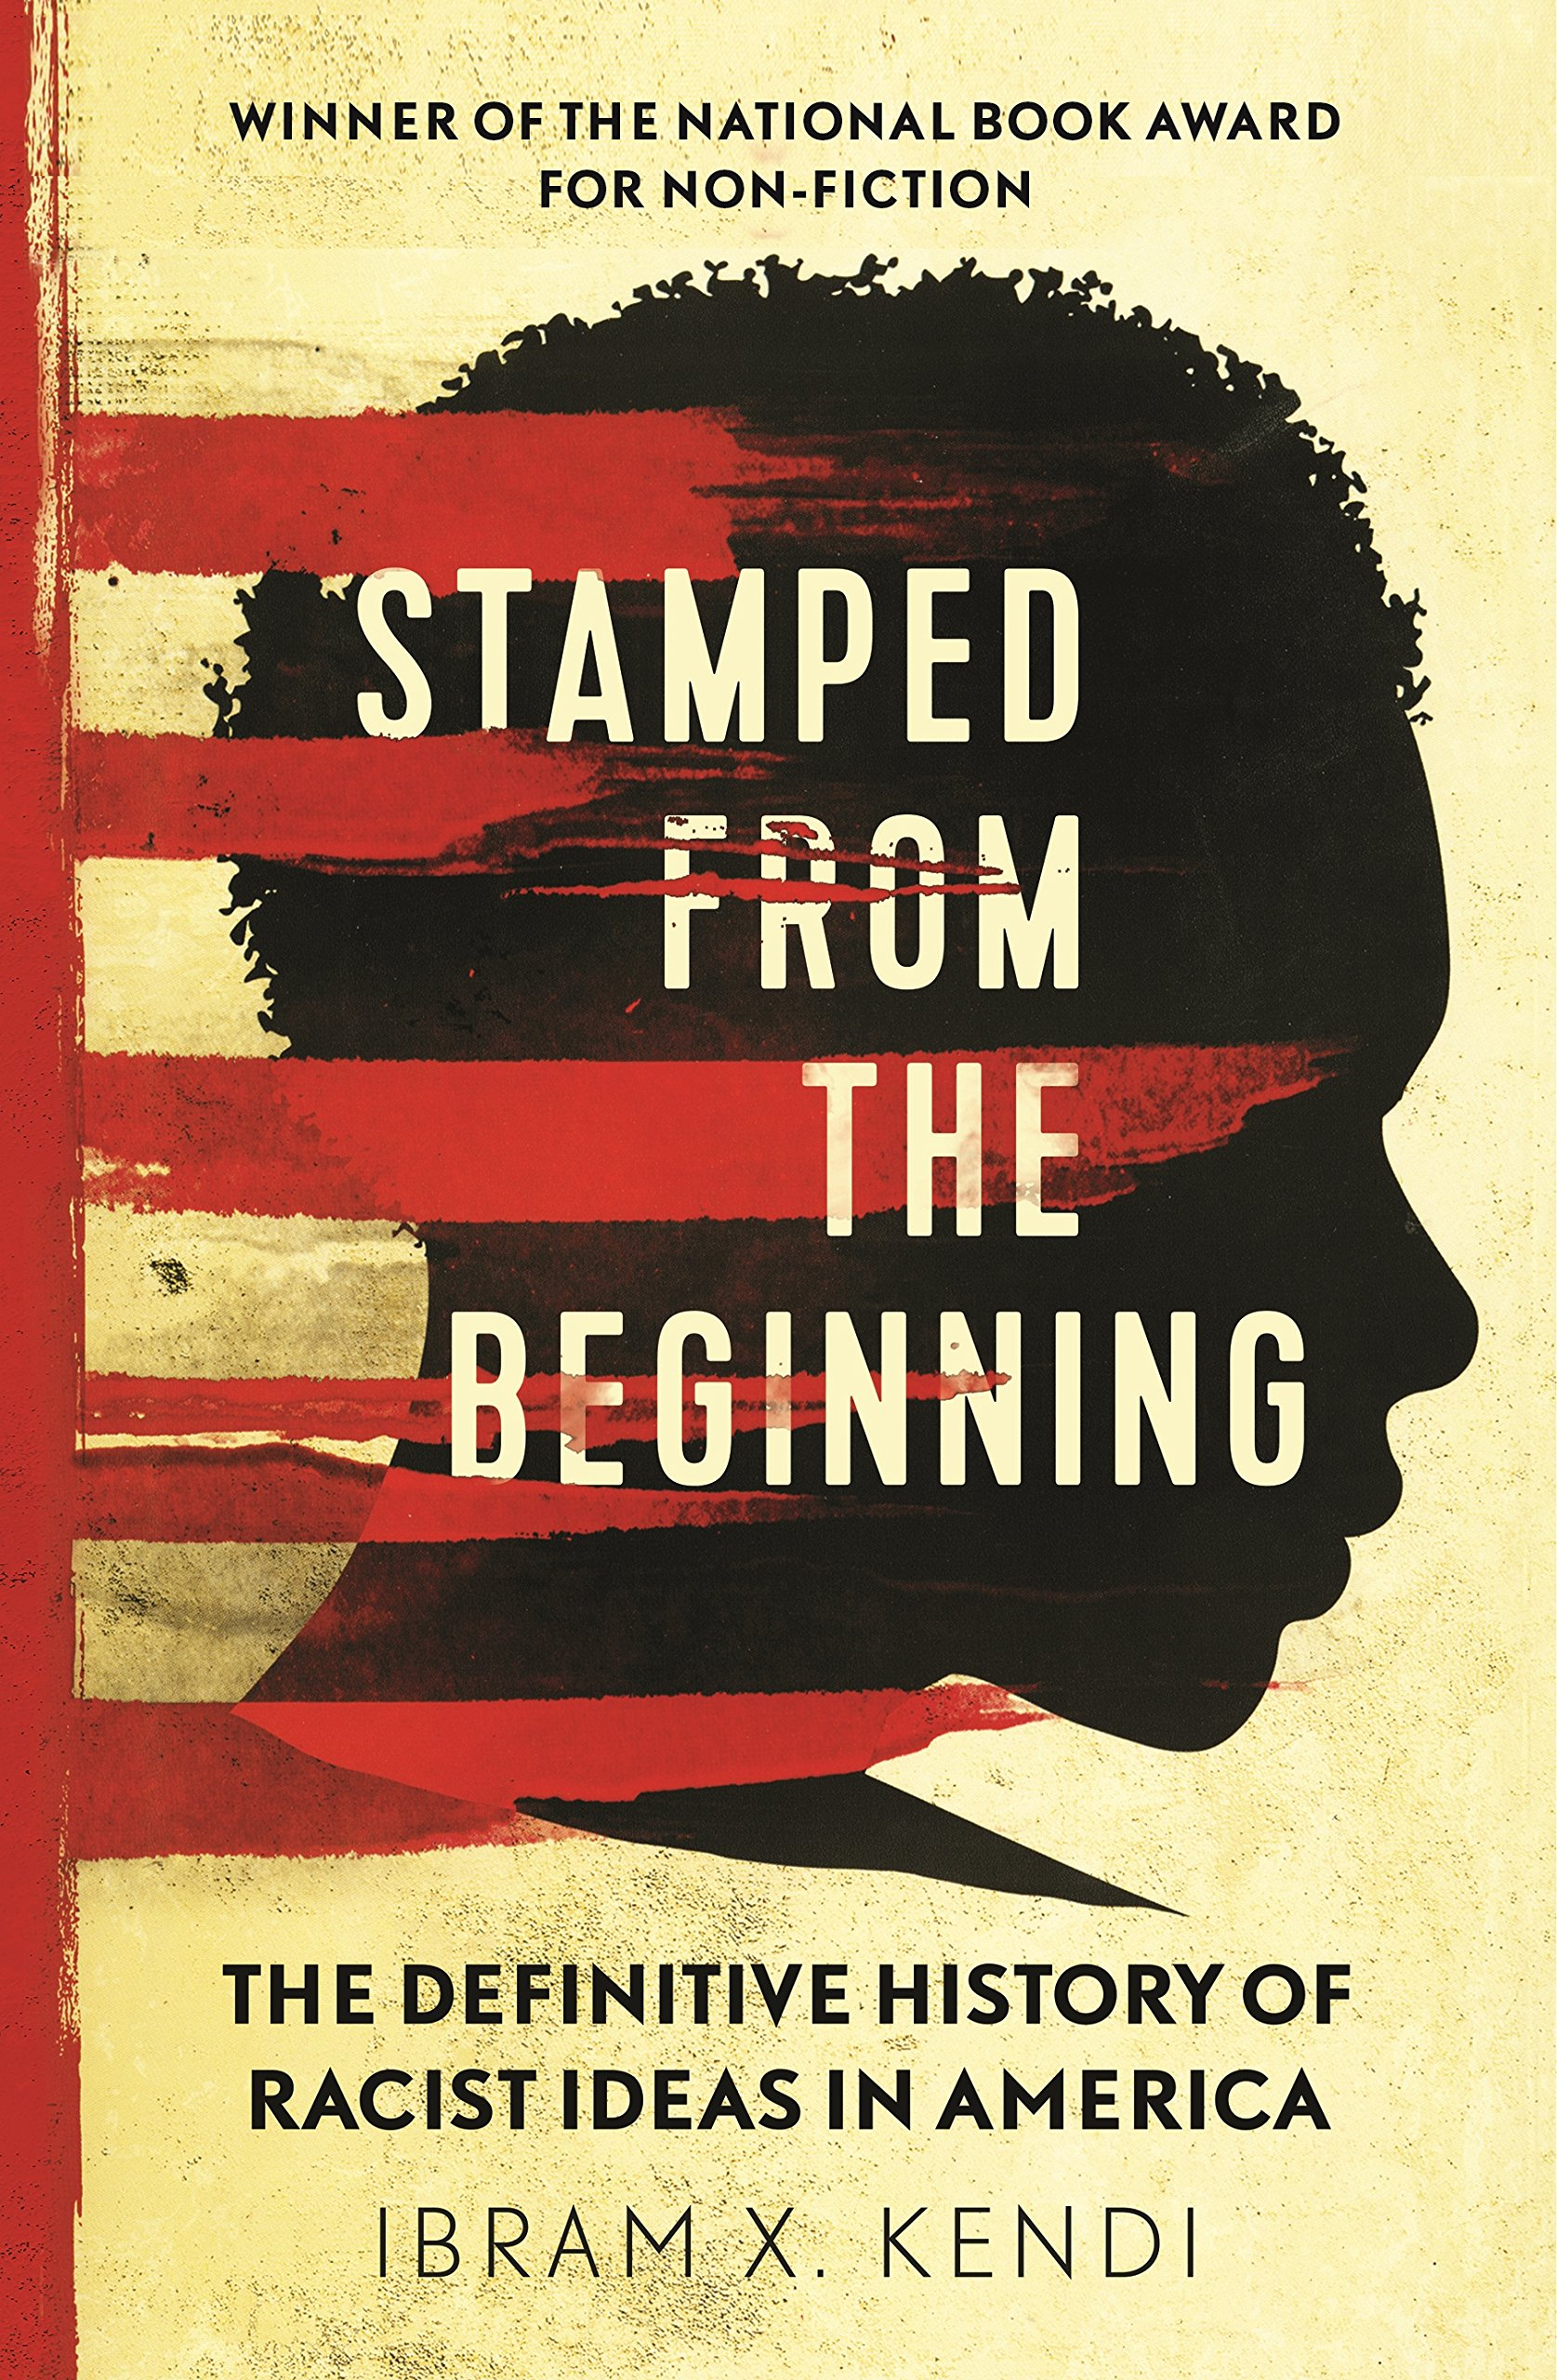 Image result for Stamped from the Beginning: The Definitive History of Racist Ideas in America by Ibram X. Kendi